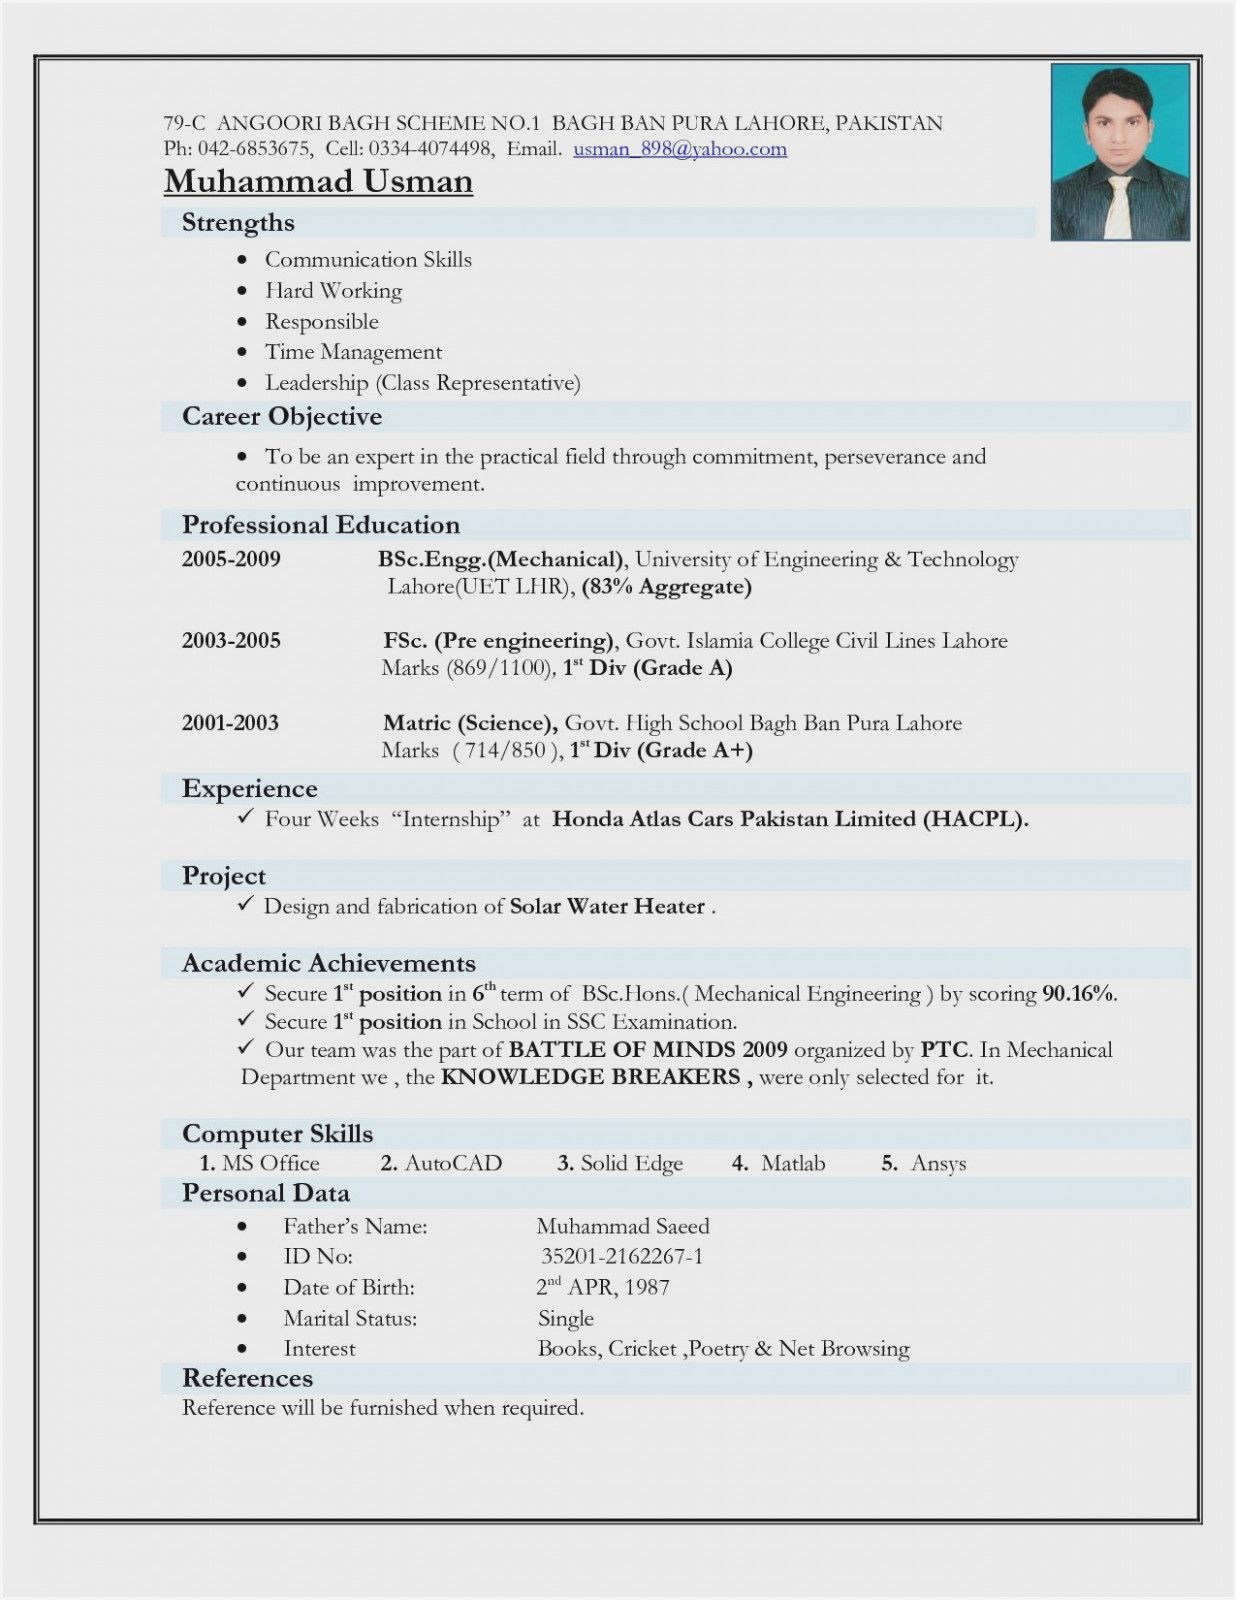 engineer resume template in mechanical engineering format for freshers computer hardware Resume Computer Hardware Engineer Resume Format